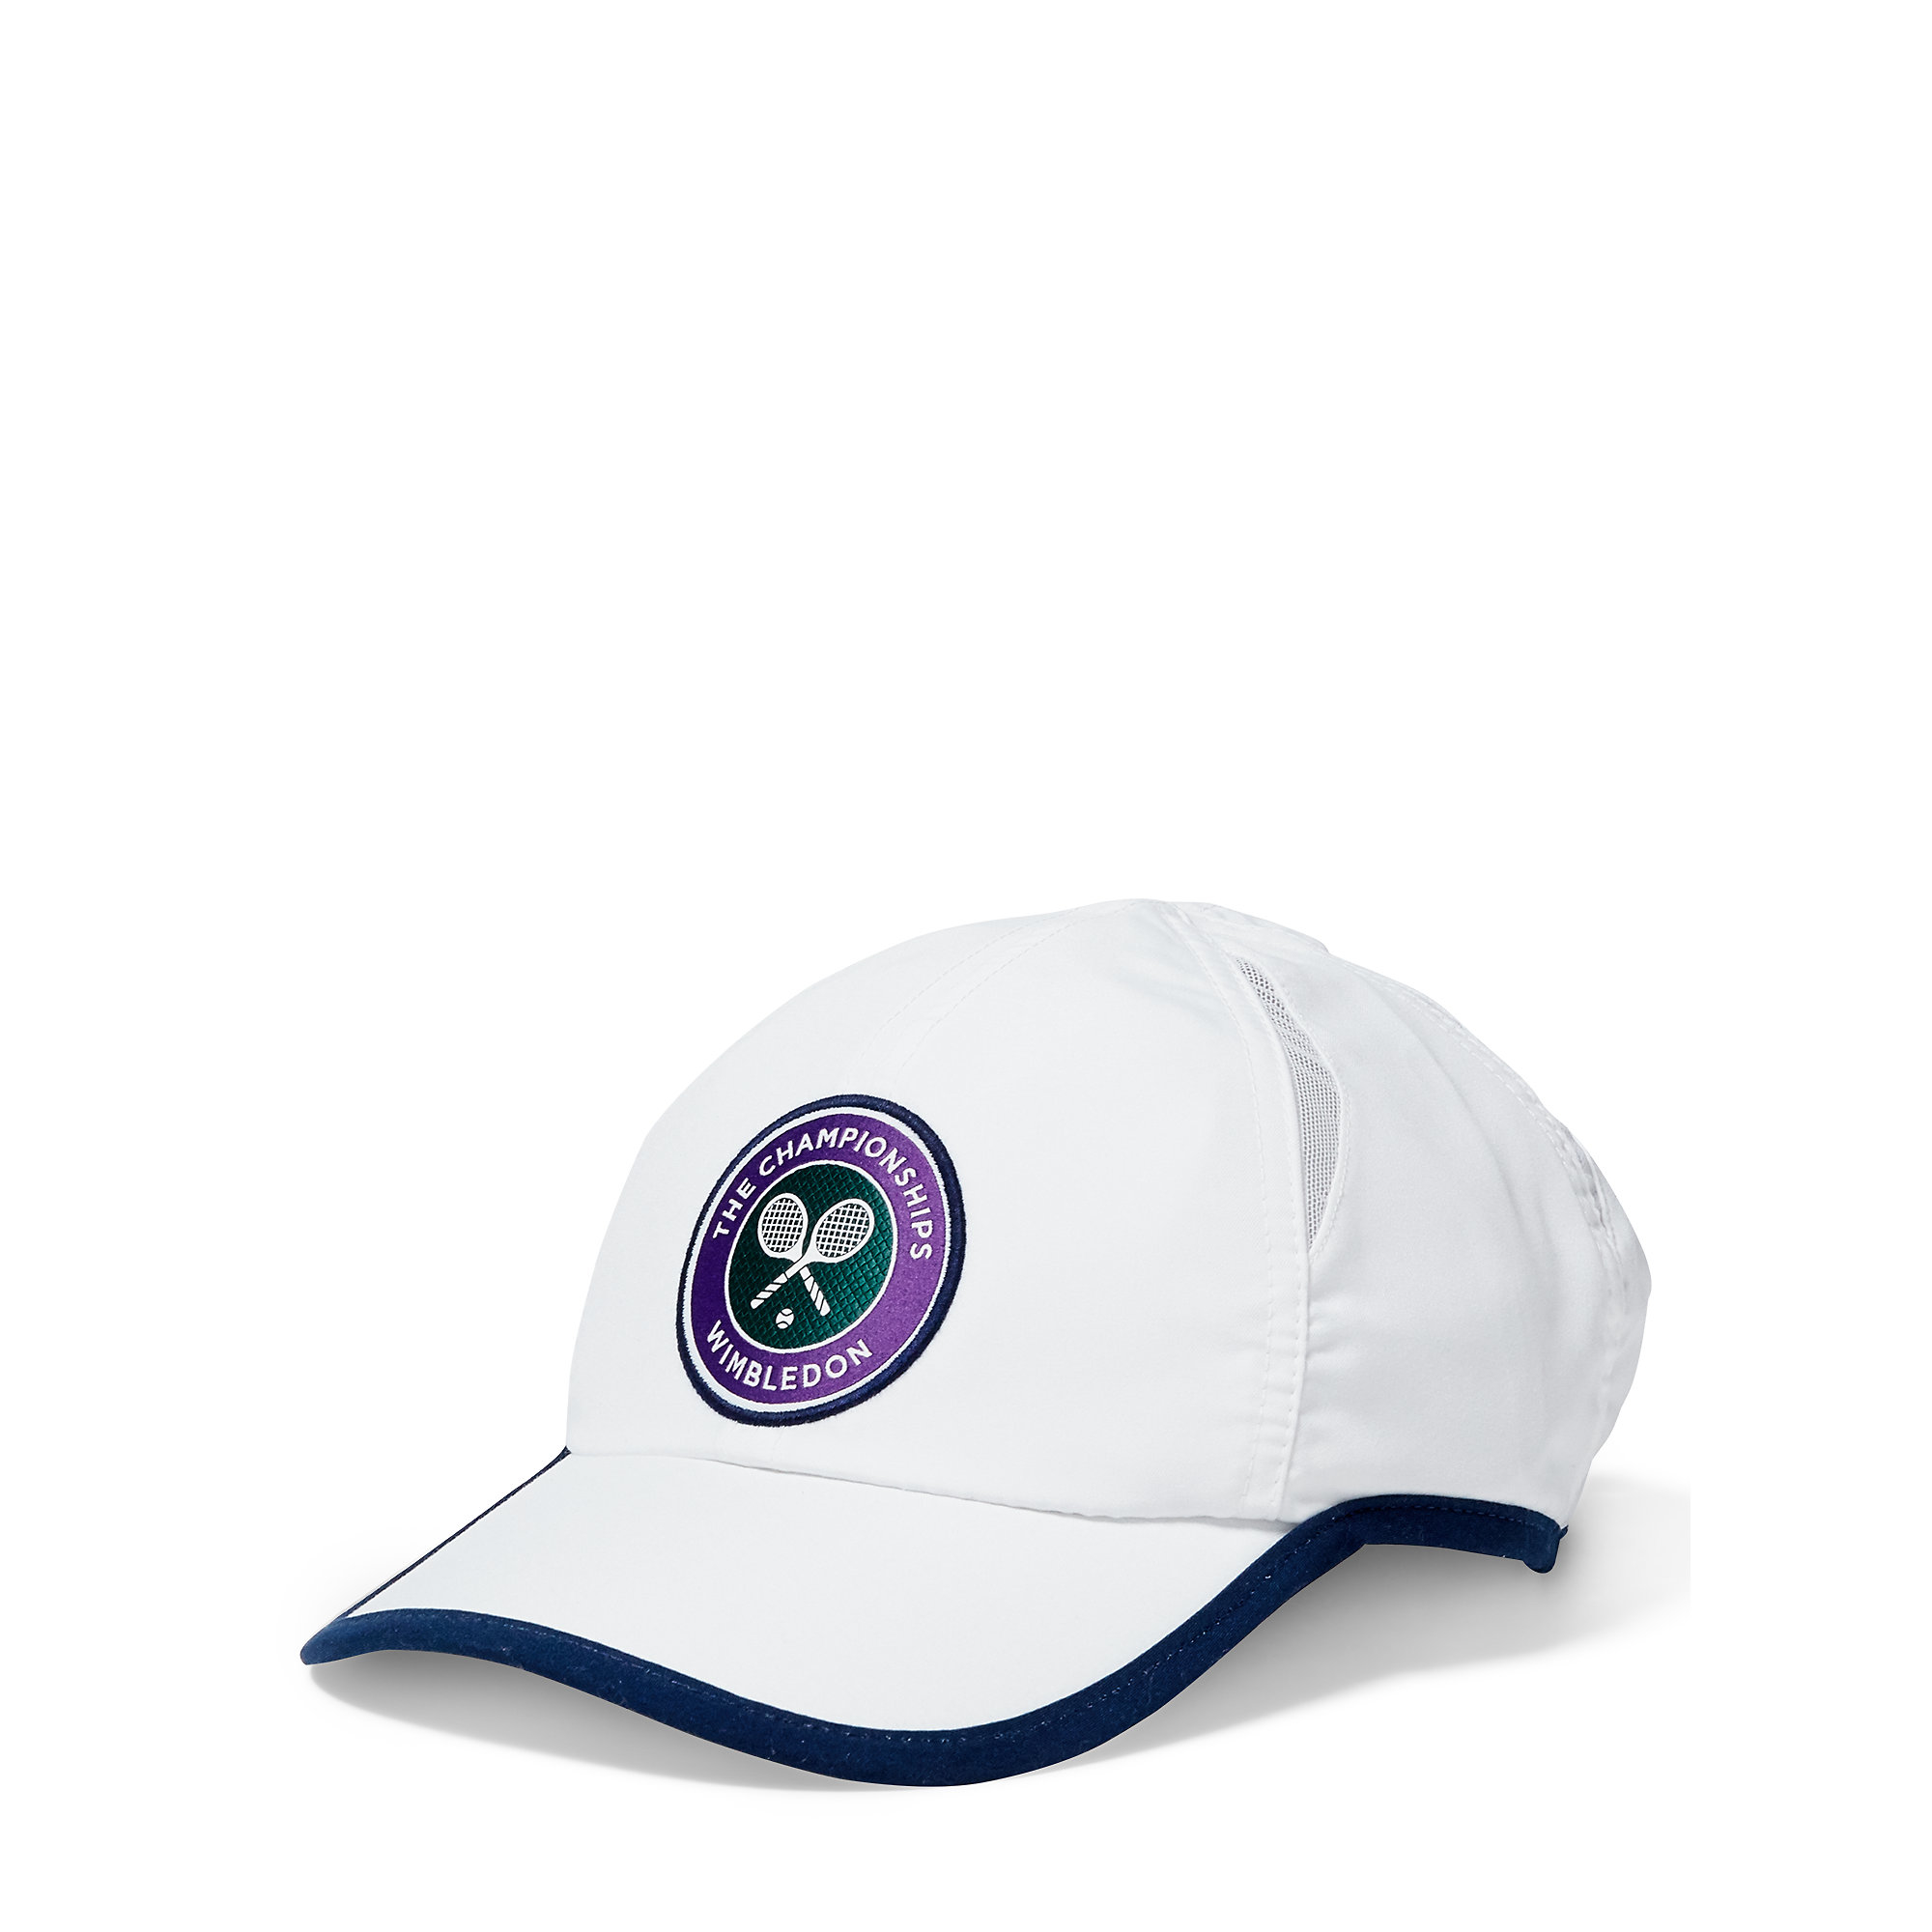 081994176ce Lyst - Polo Ralph Lauren Wimbledon Cross-court Cap in White for Men